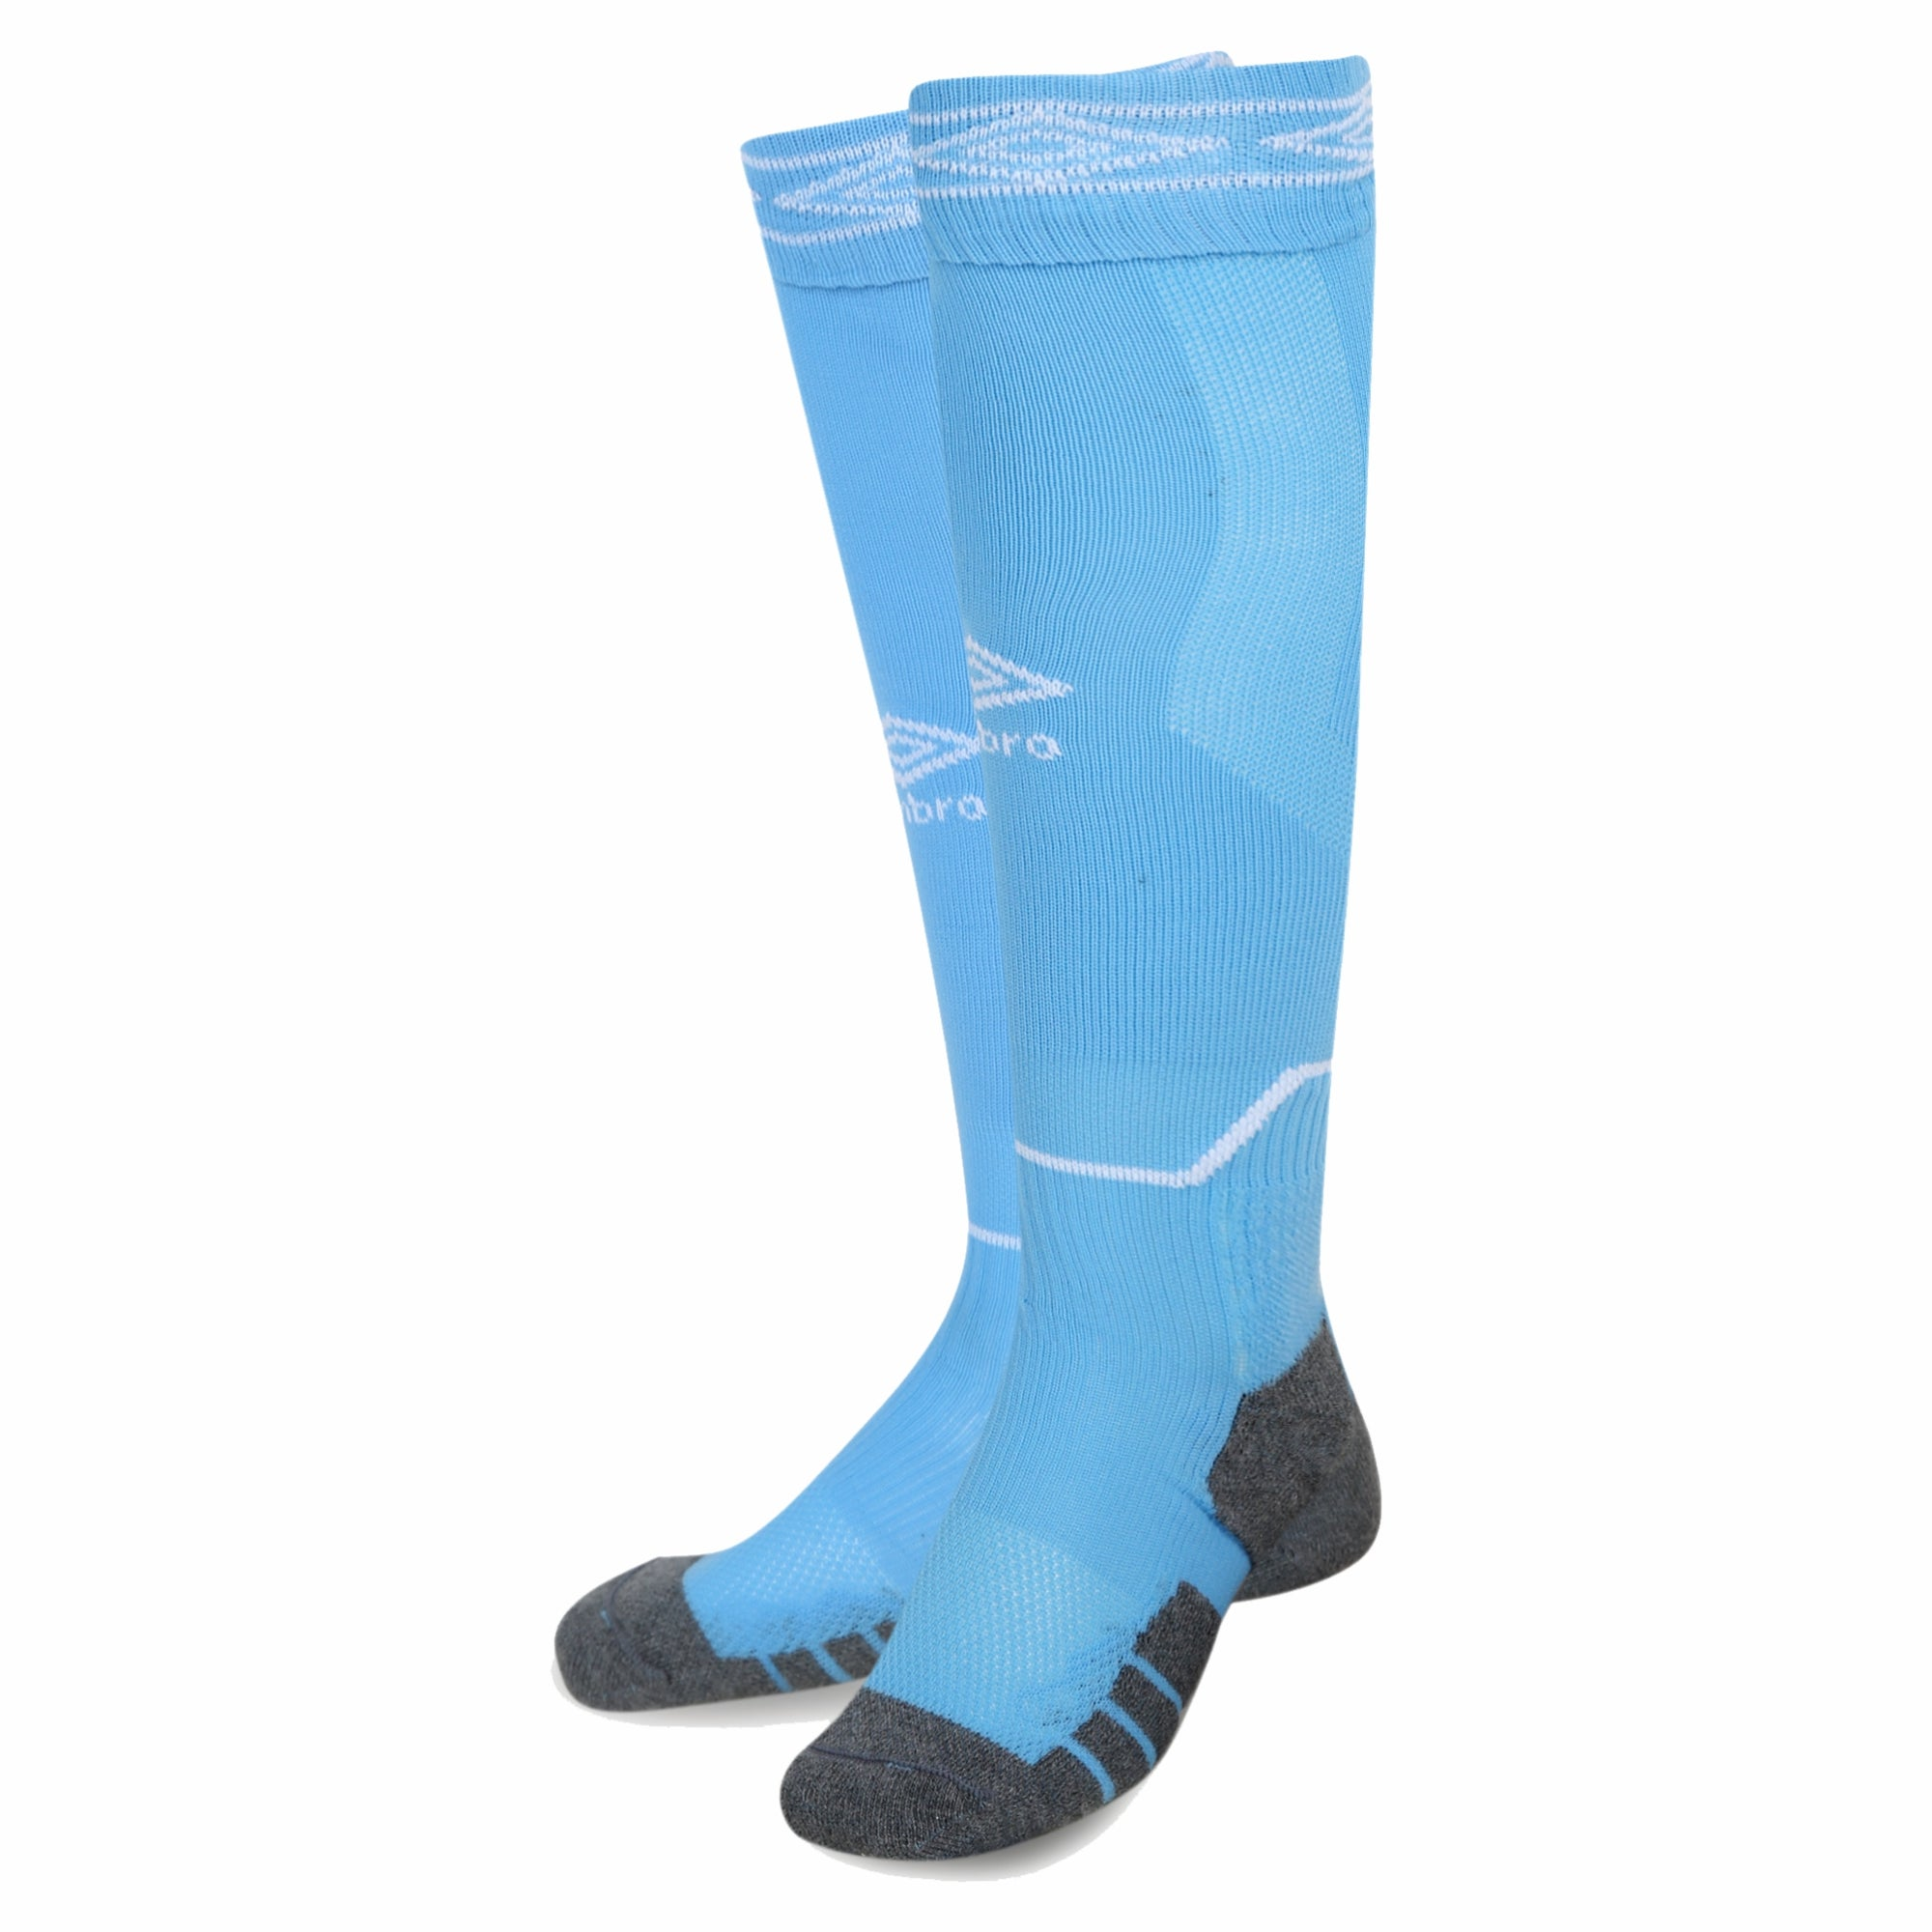 Redhill - Umbro Diamond Top Socks - Sky/White